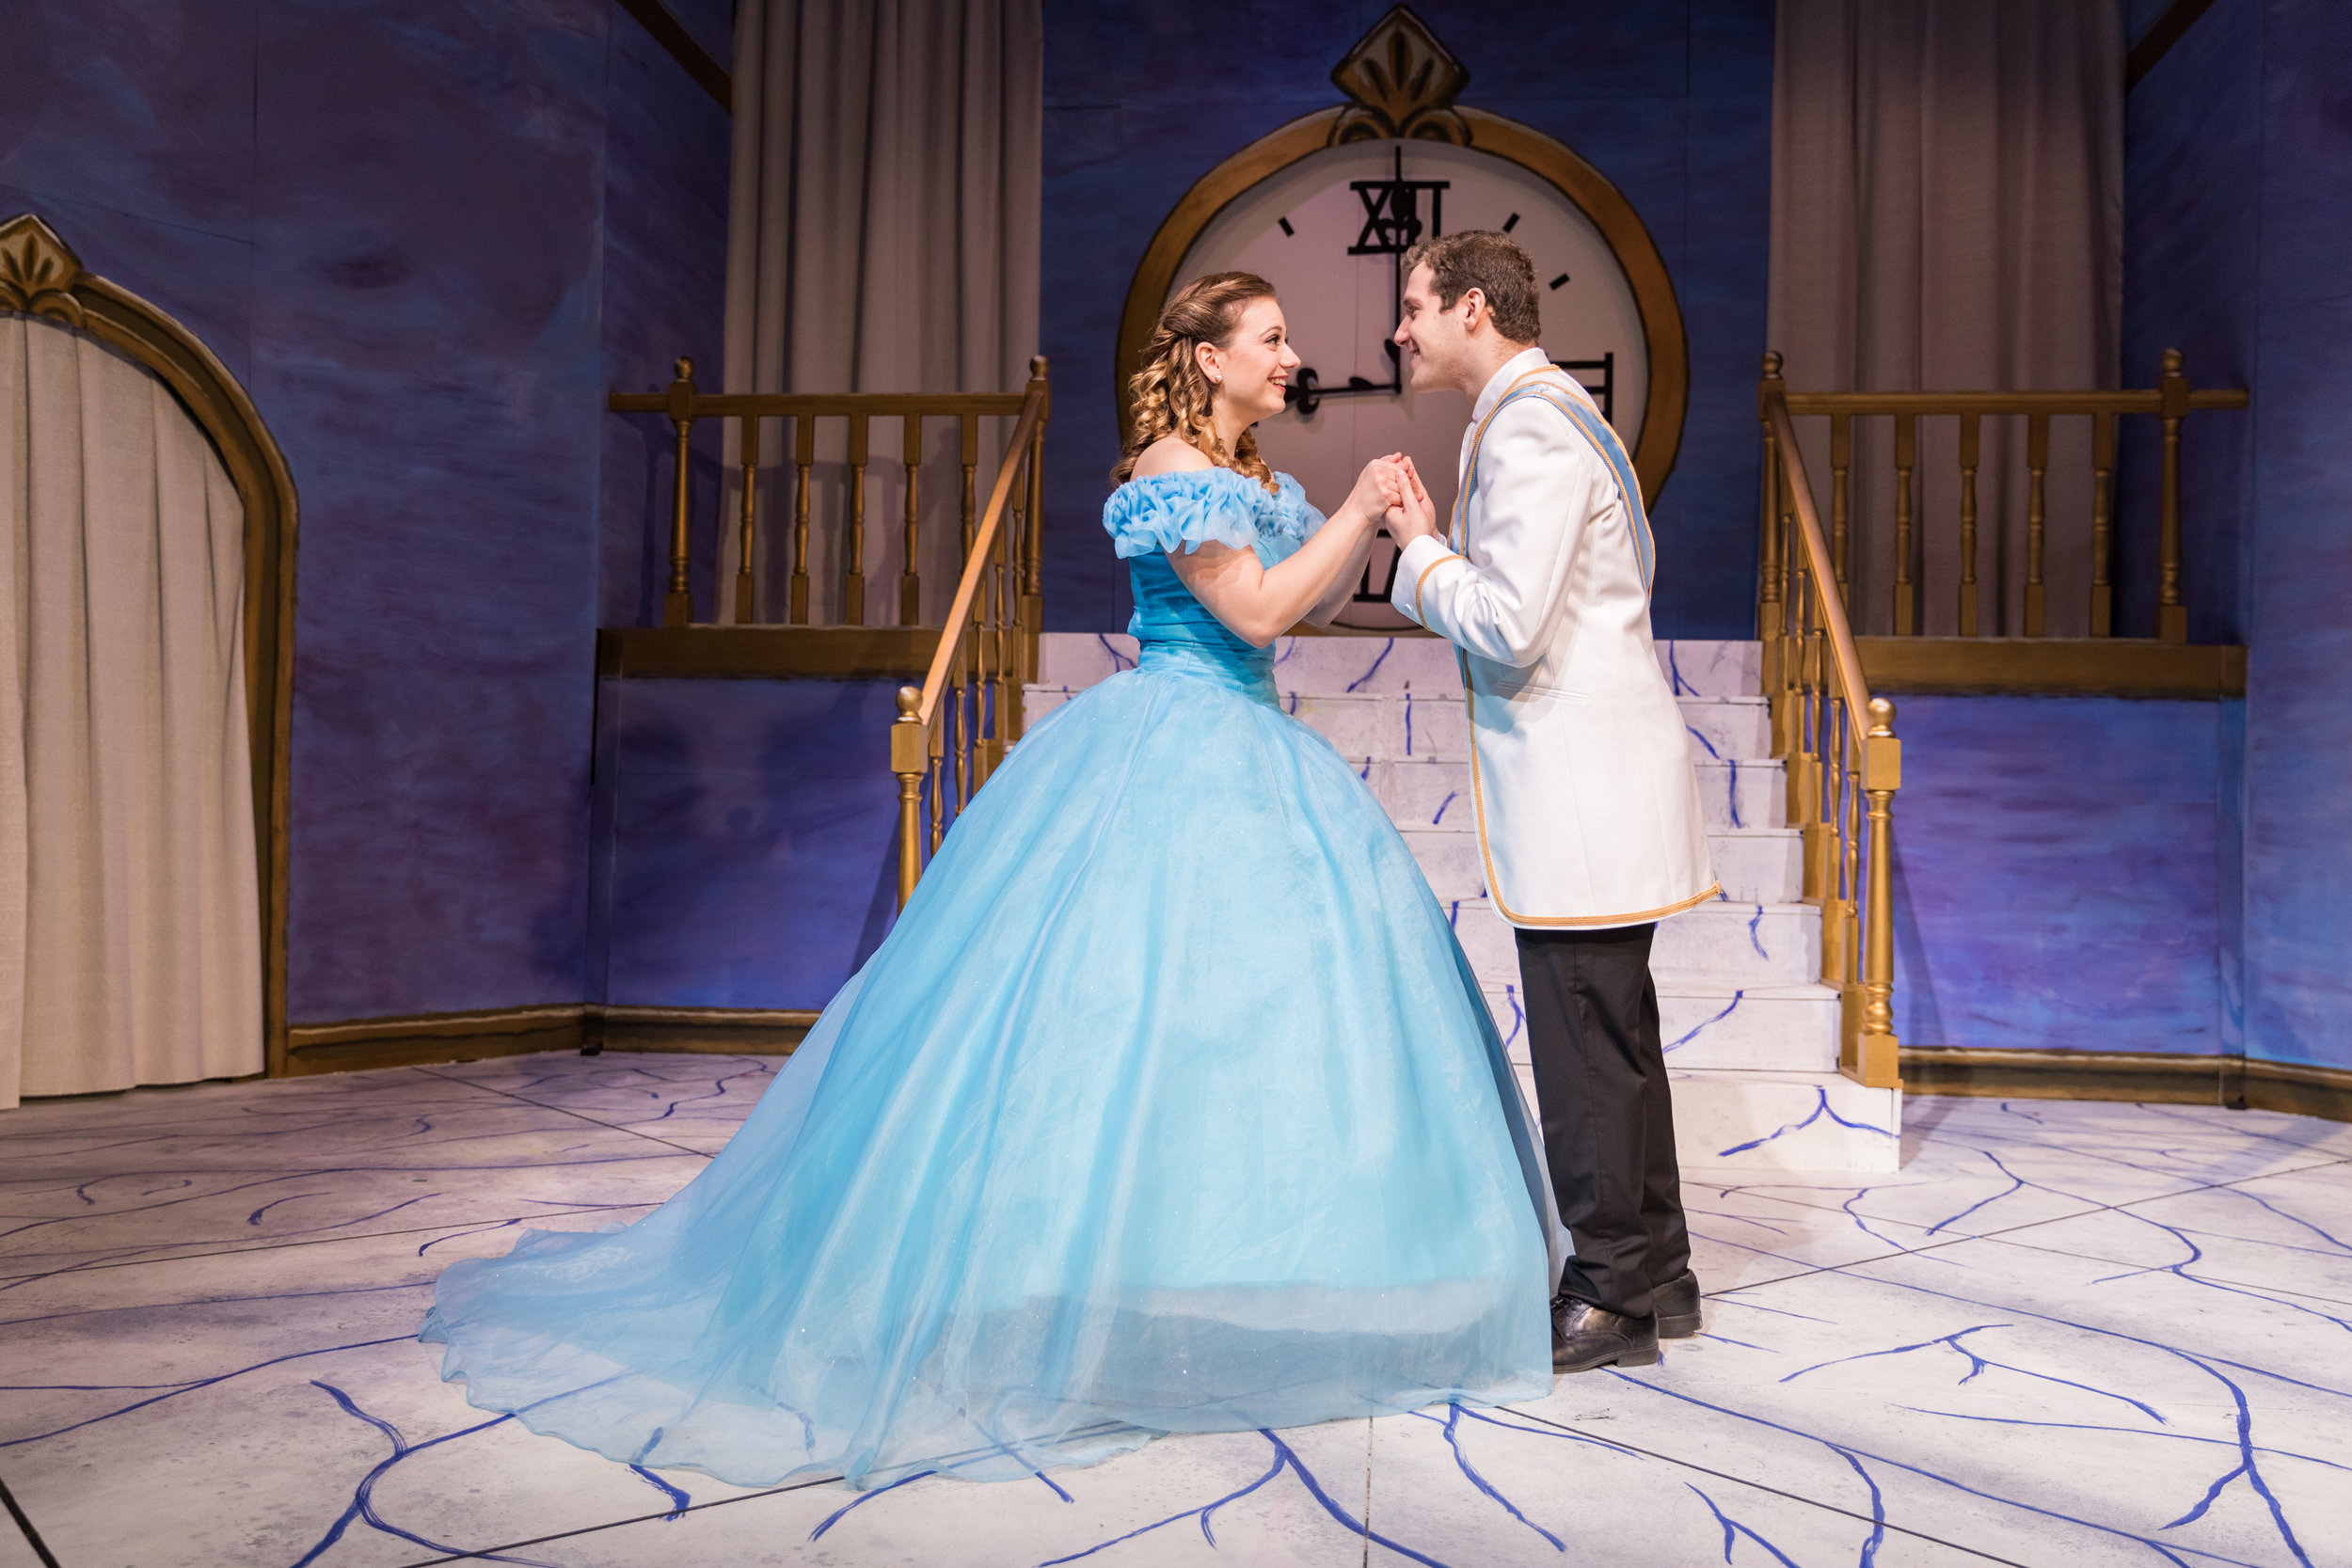 Act II: Cendrillon (Arianna Paz '19) and Le Prince Charmant (Samuel Rosner '20), meet and instantaneously fall in love at the Prince's ball. Photo: Joshua Chiang.